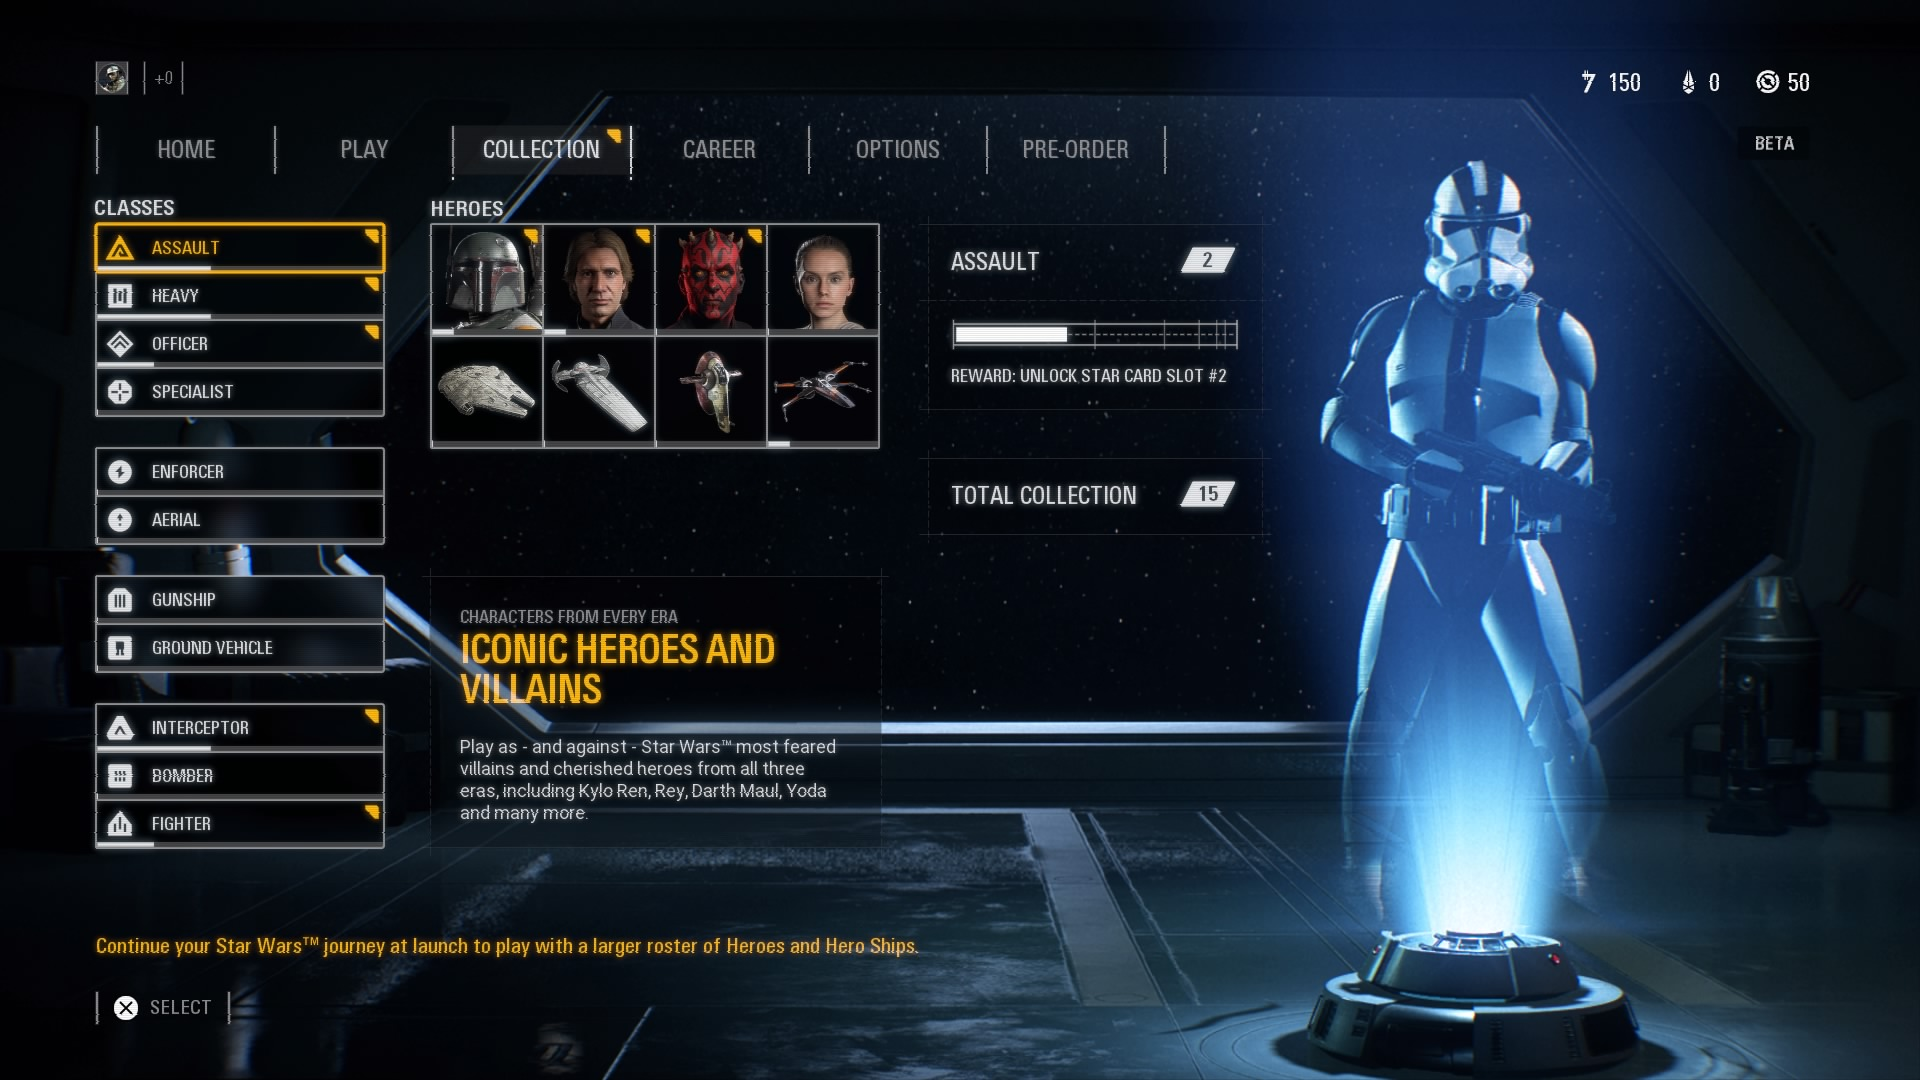 Star Wars Battlefront 2 Beta Guide